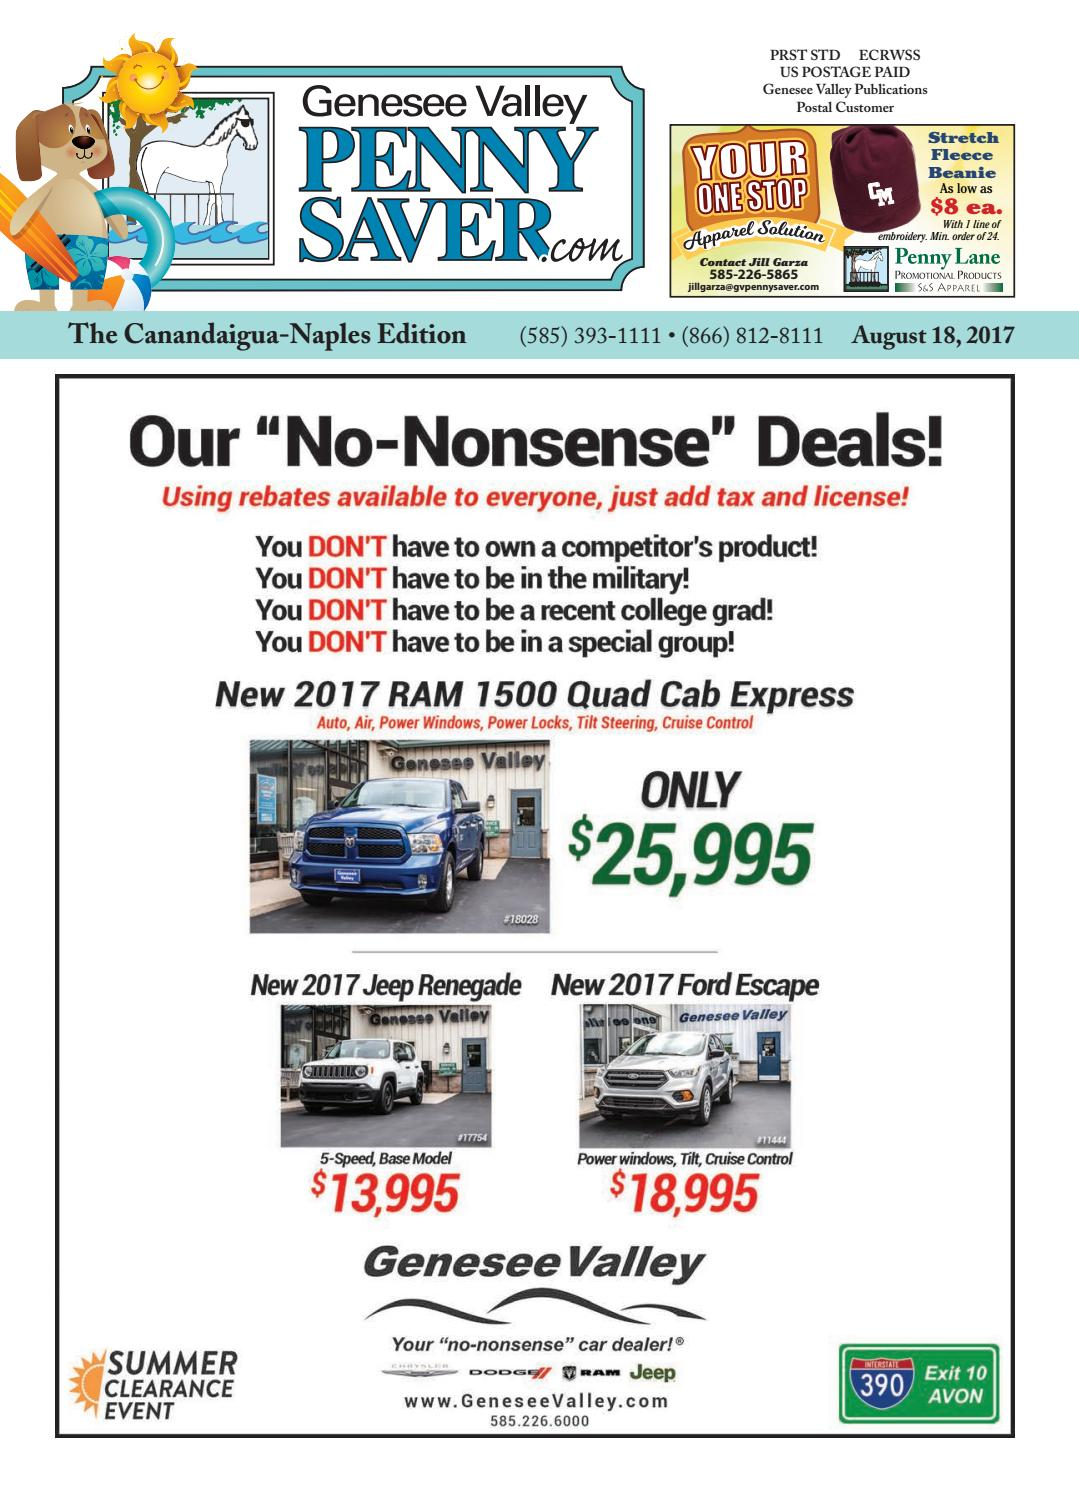 The Genesee Valley Penny Saver Canandaigua-Naples Edition 8/18/17 by  Genesee Valley Publications - issuu